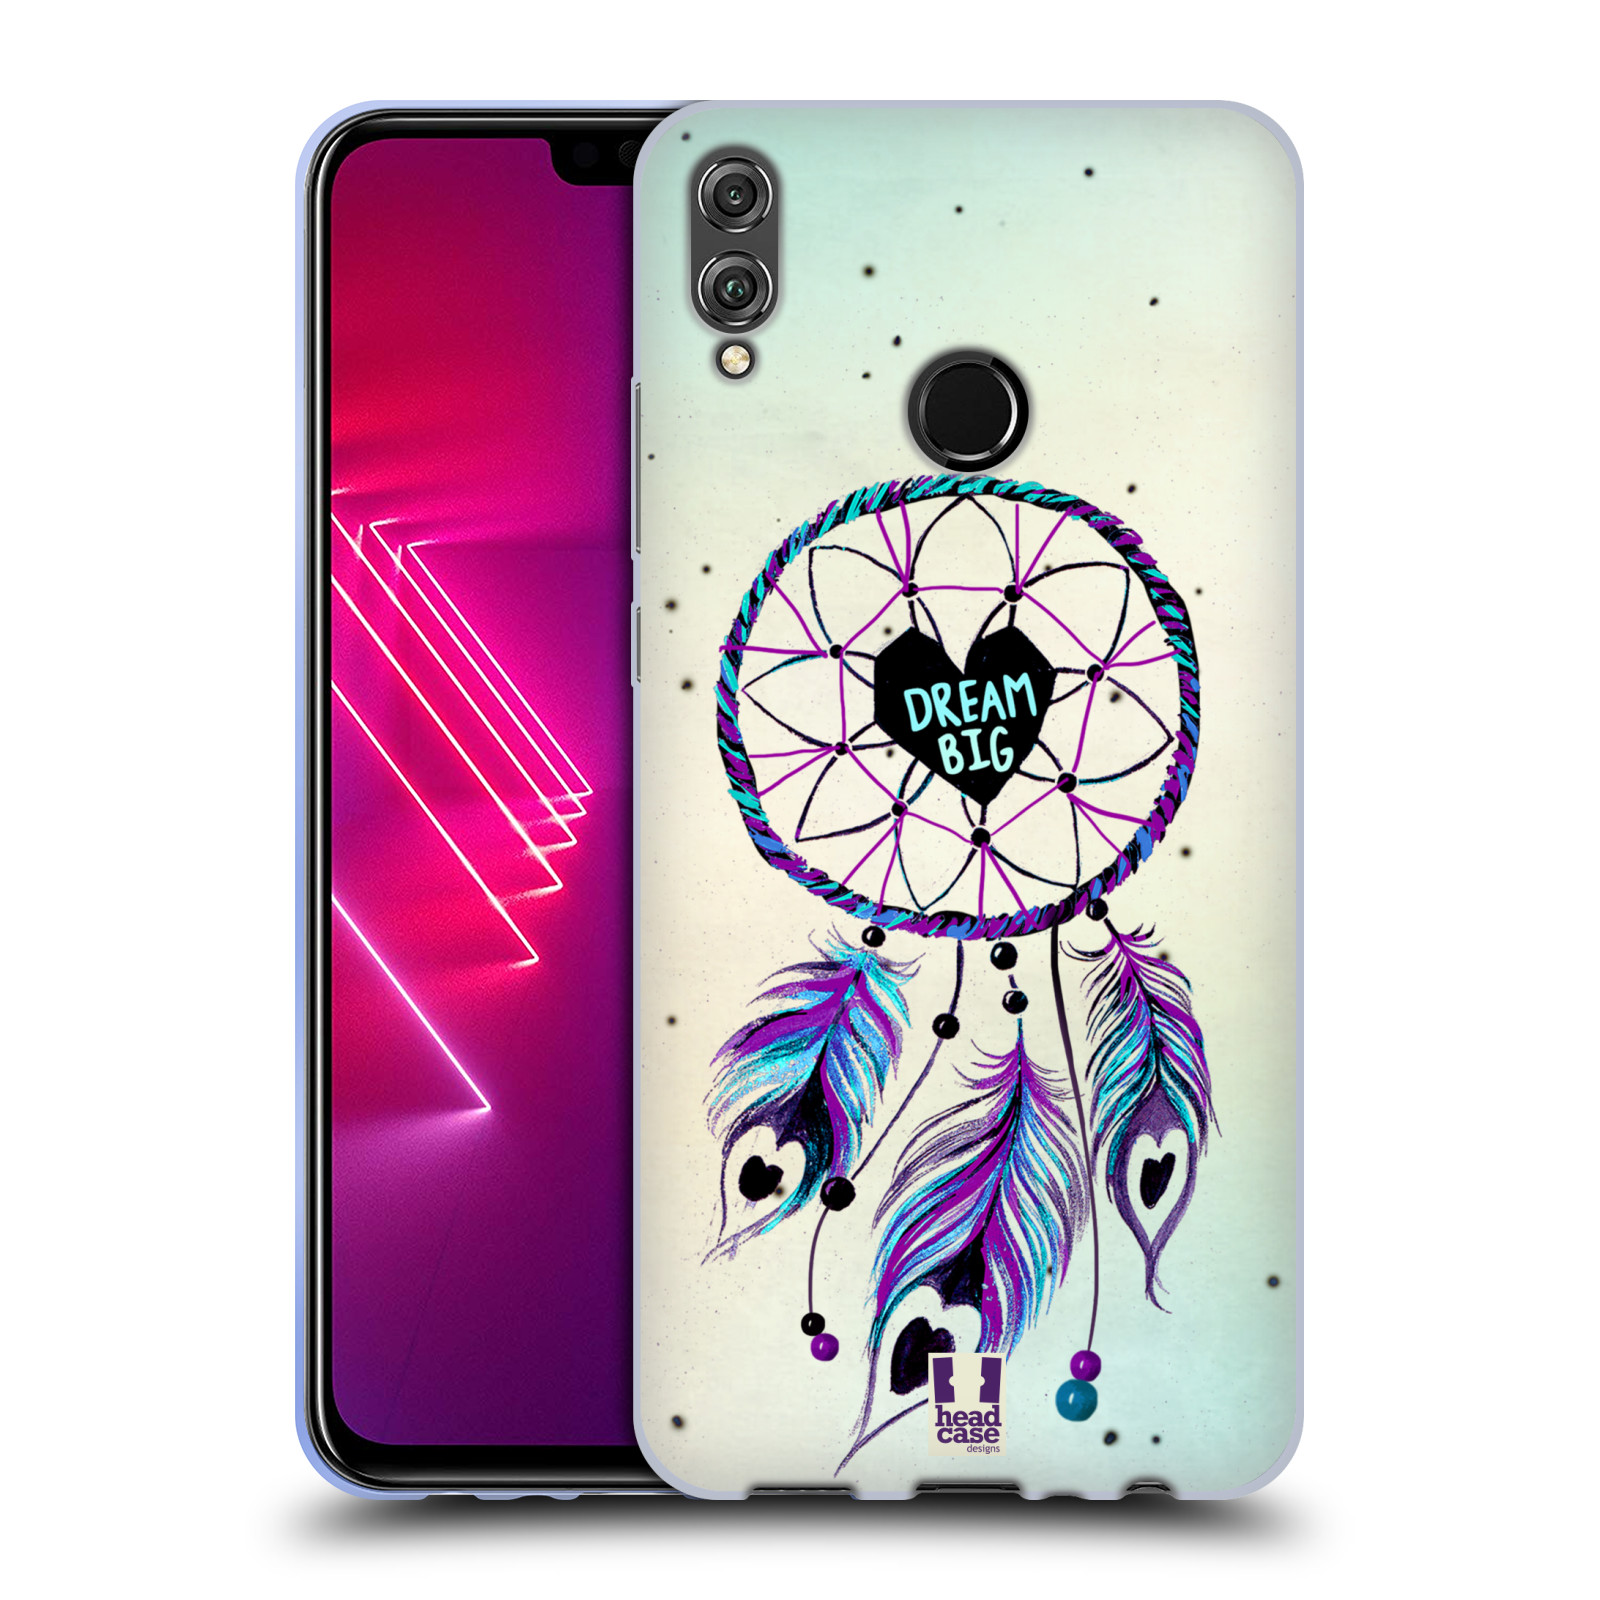 Silikonové pouzdro na mobil Honor View 10 Lite - Head Case - Lapač Assorted Dream Big Srdce